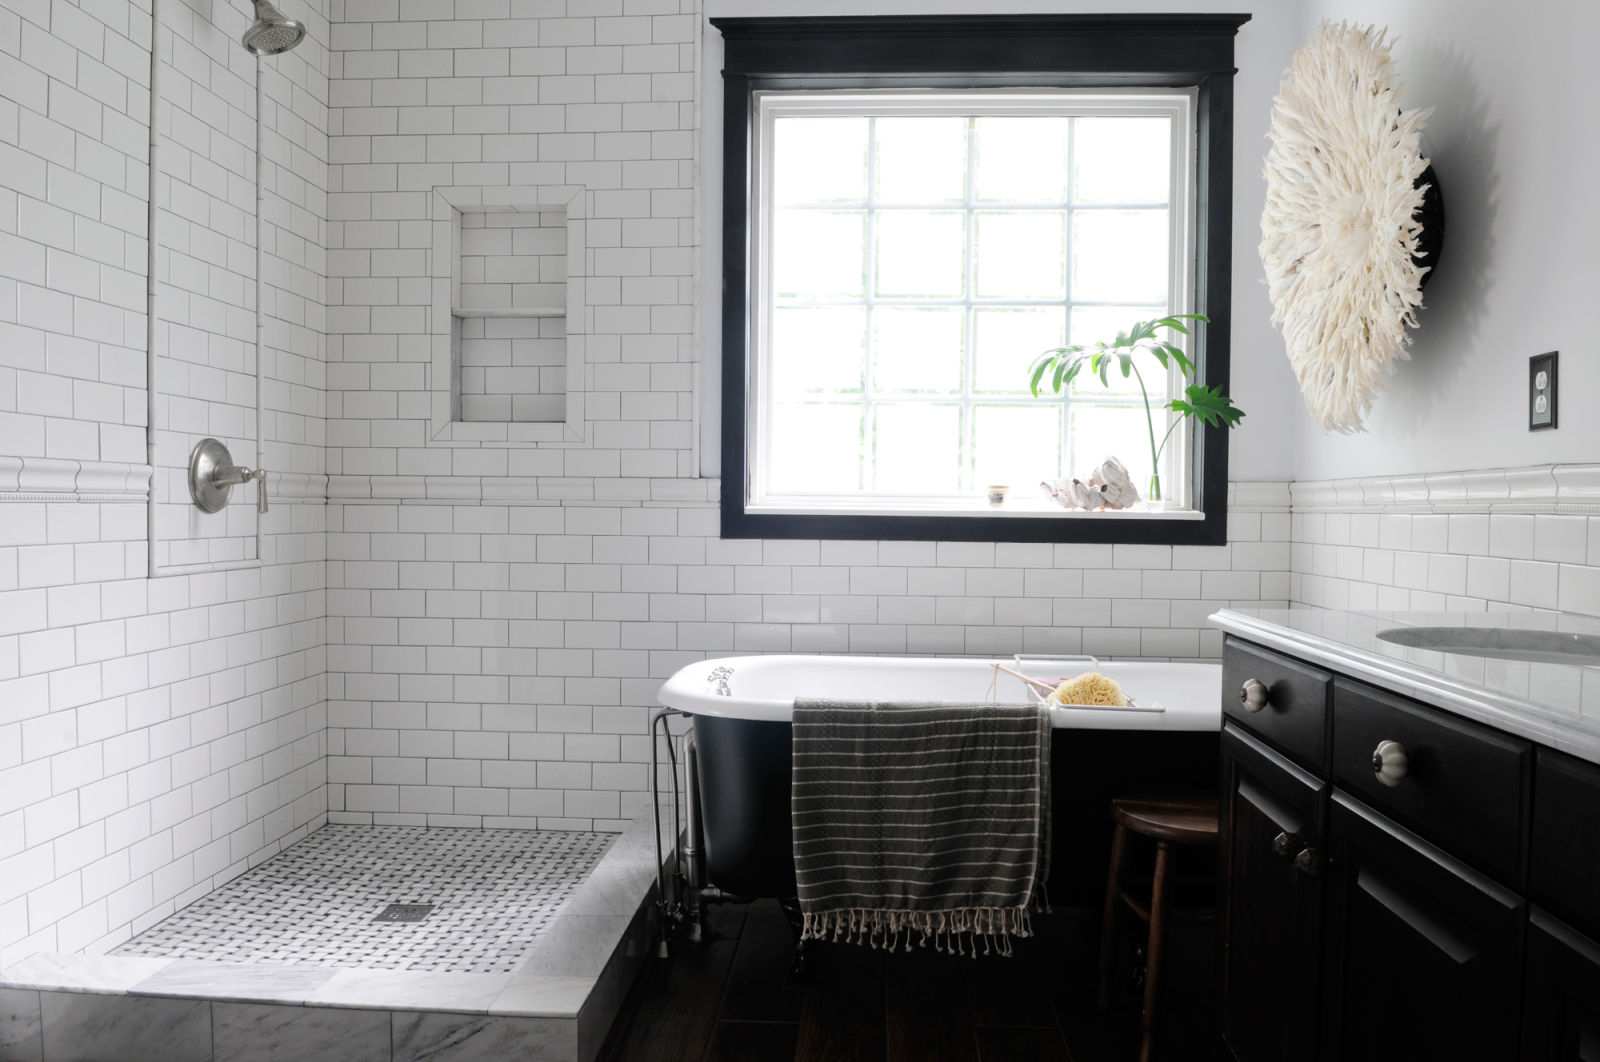 black-and-white-retro-bathroom-wall-mount-toilet-decor-what-is-debt-ceiling-ideas-inventor-design-fix-leaky-shower-faucet-bathtubs-with-diagram-for-exterior-of-brooke-shields-bathtub-or-dog-above-sto